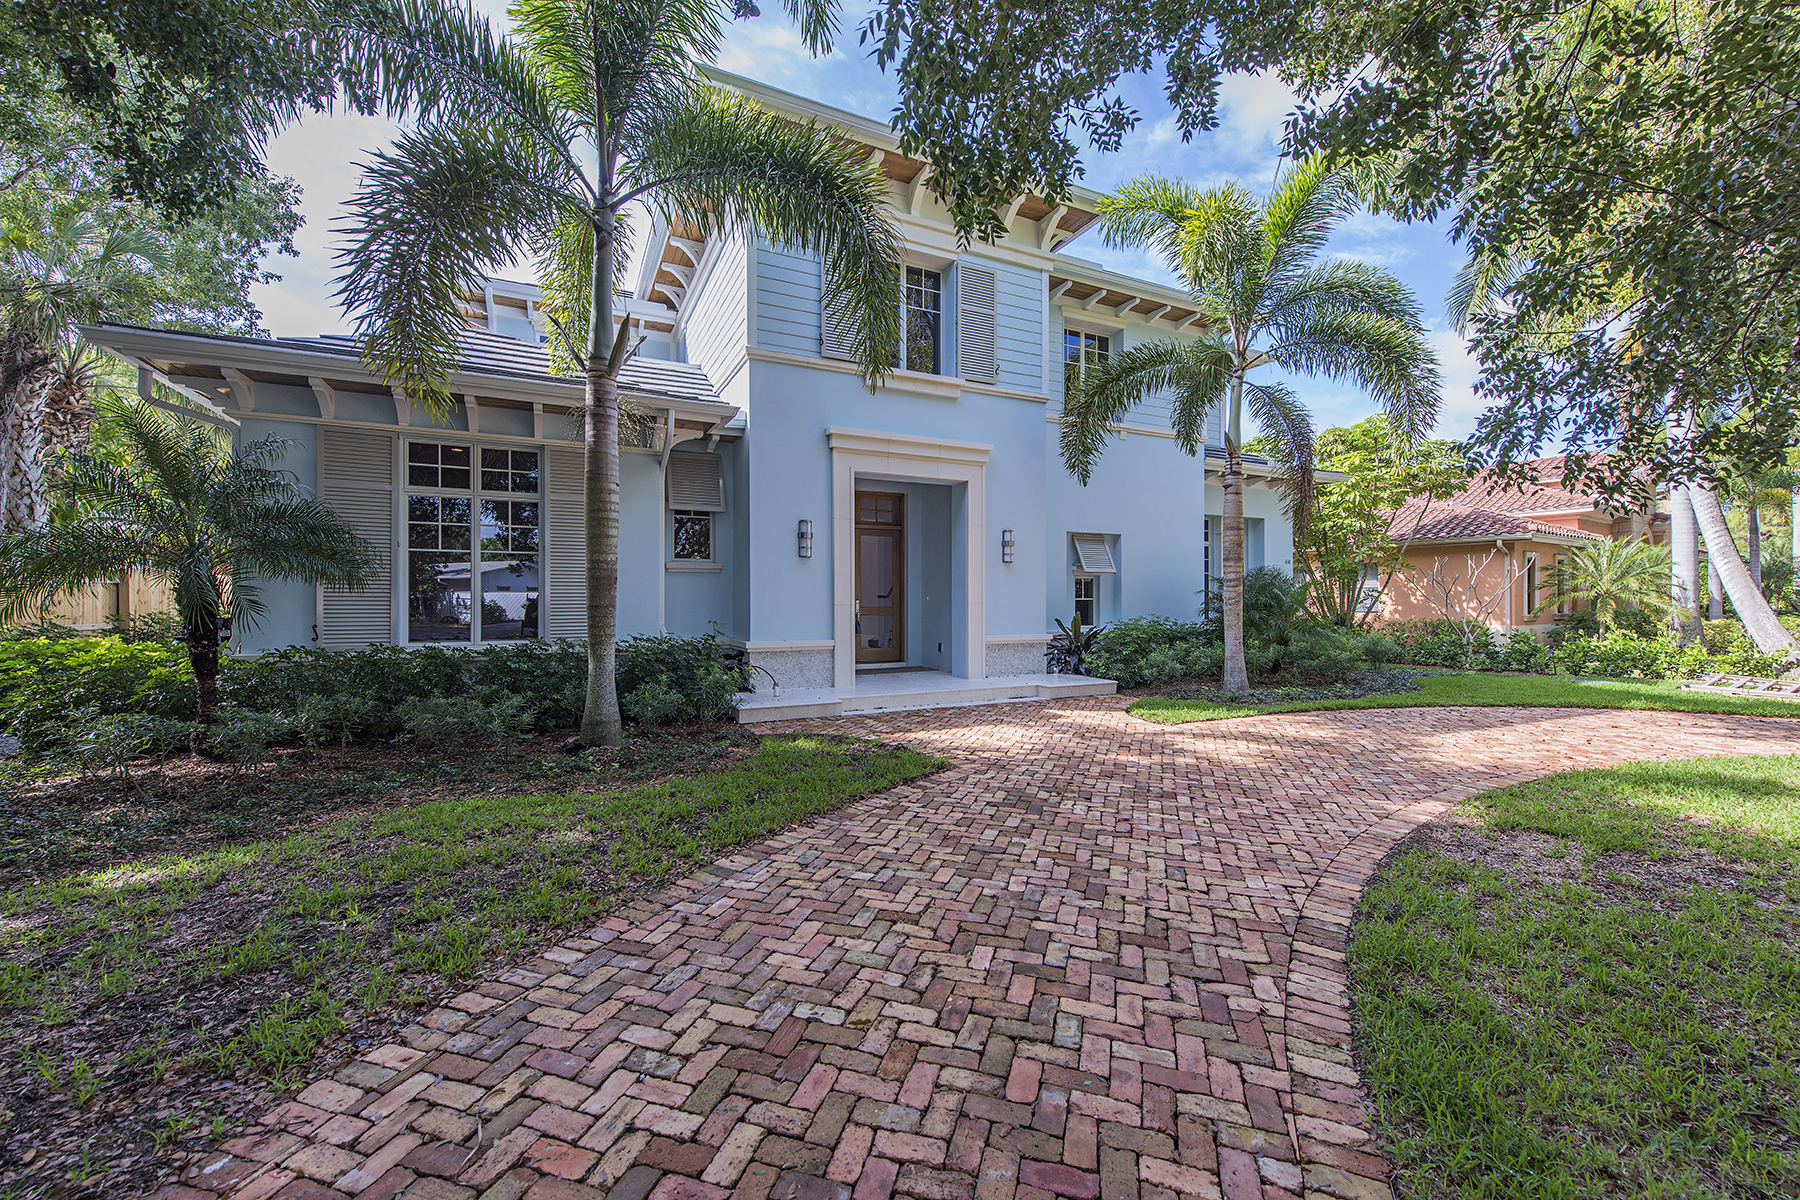 Single Family Home for Sale at Olde Naples 610 6th Ave N Naples, Florida, 34102 United States